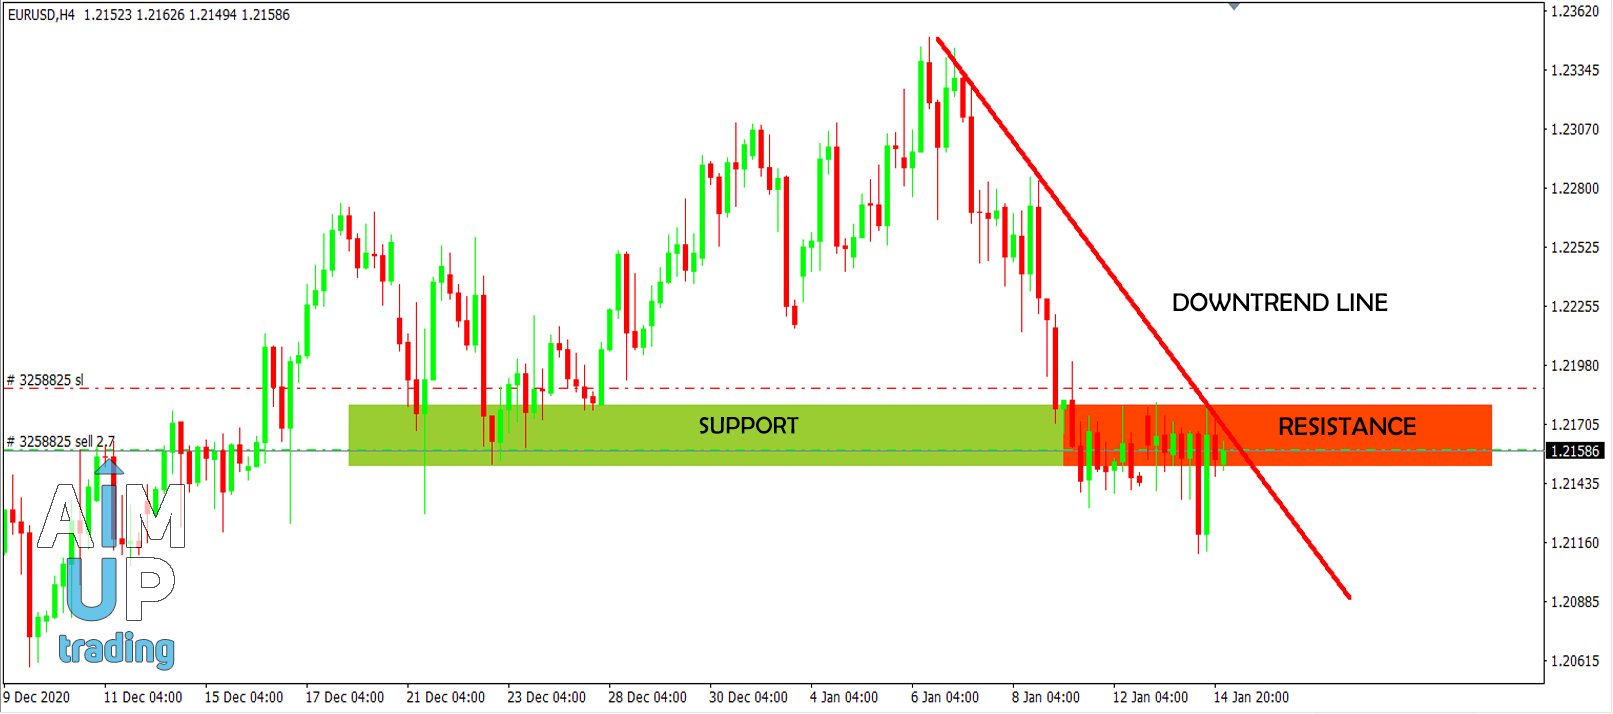 How to properly trade resistance and support